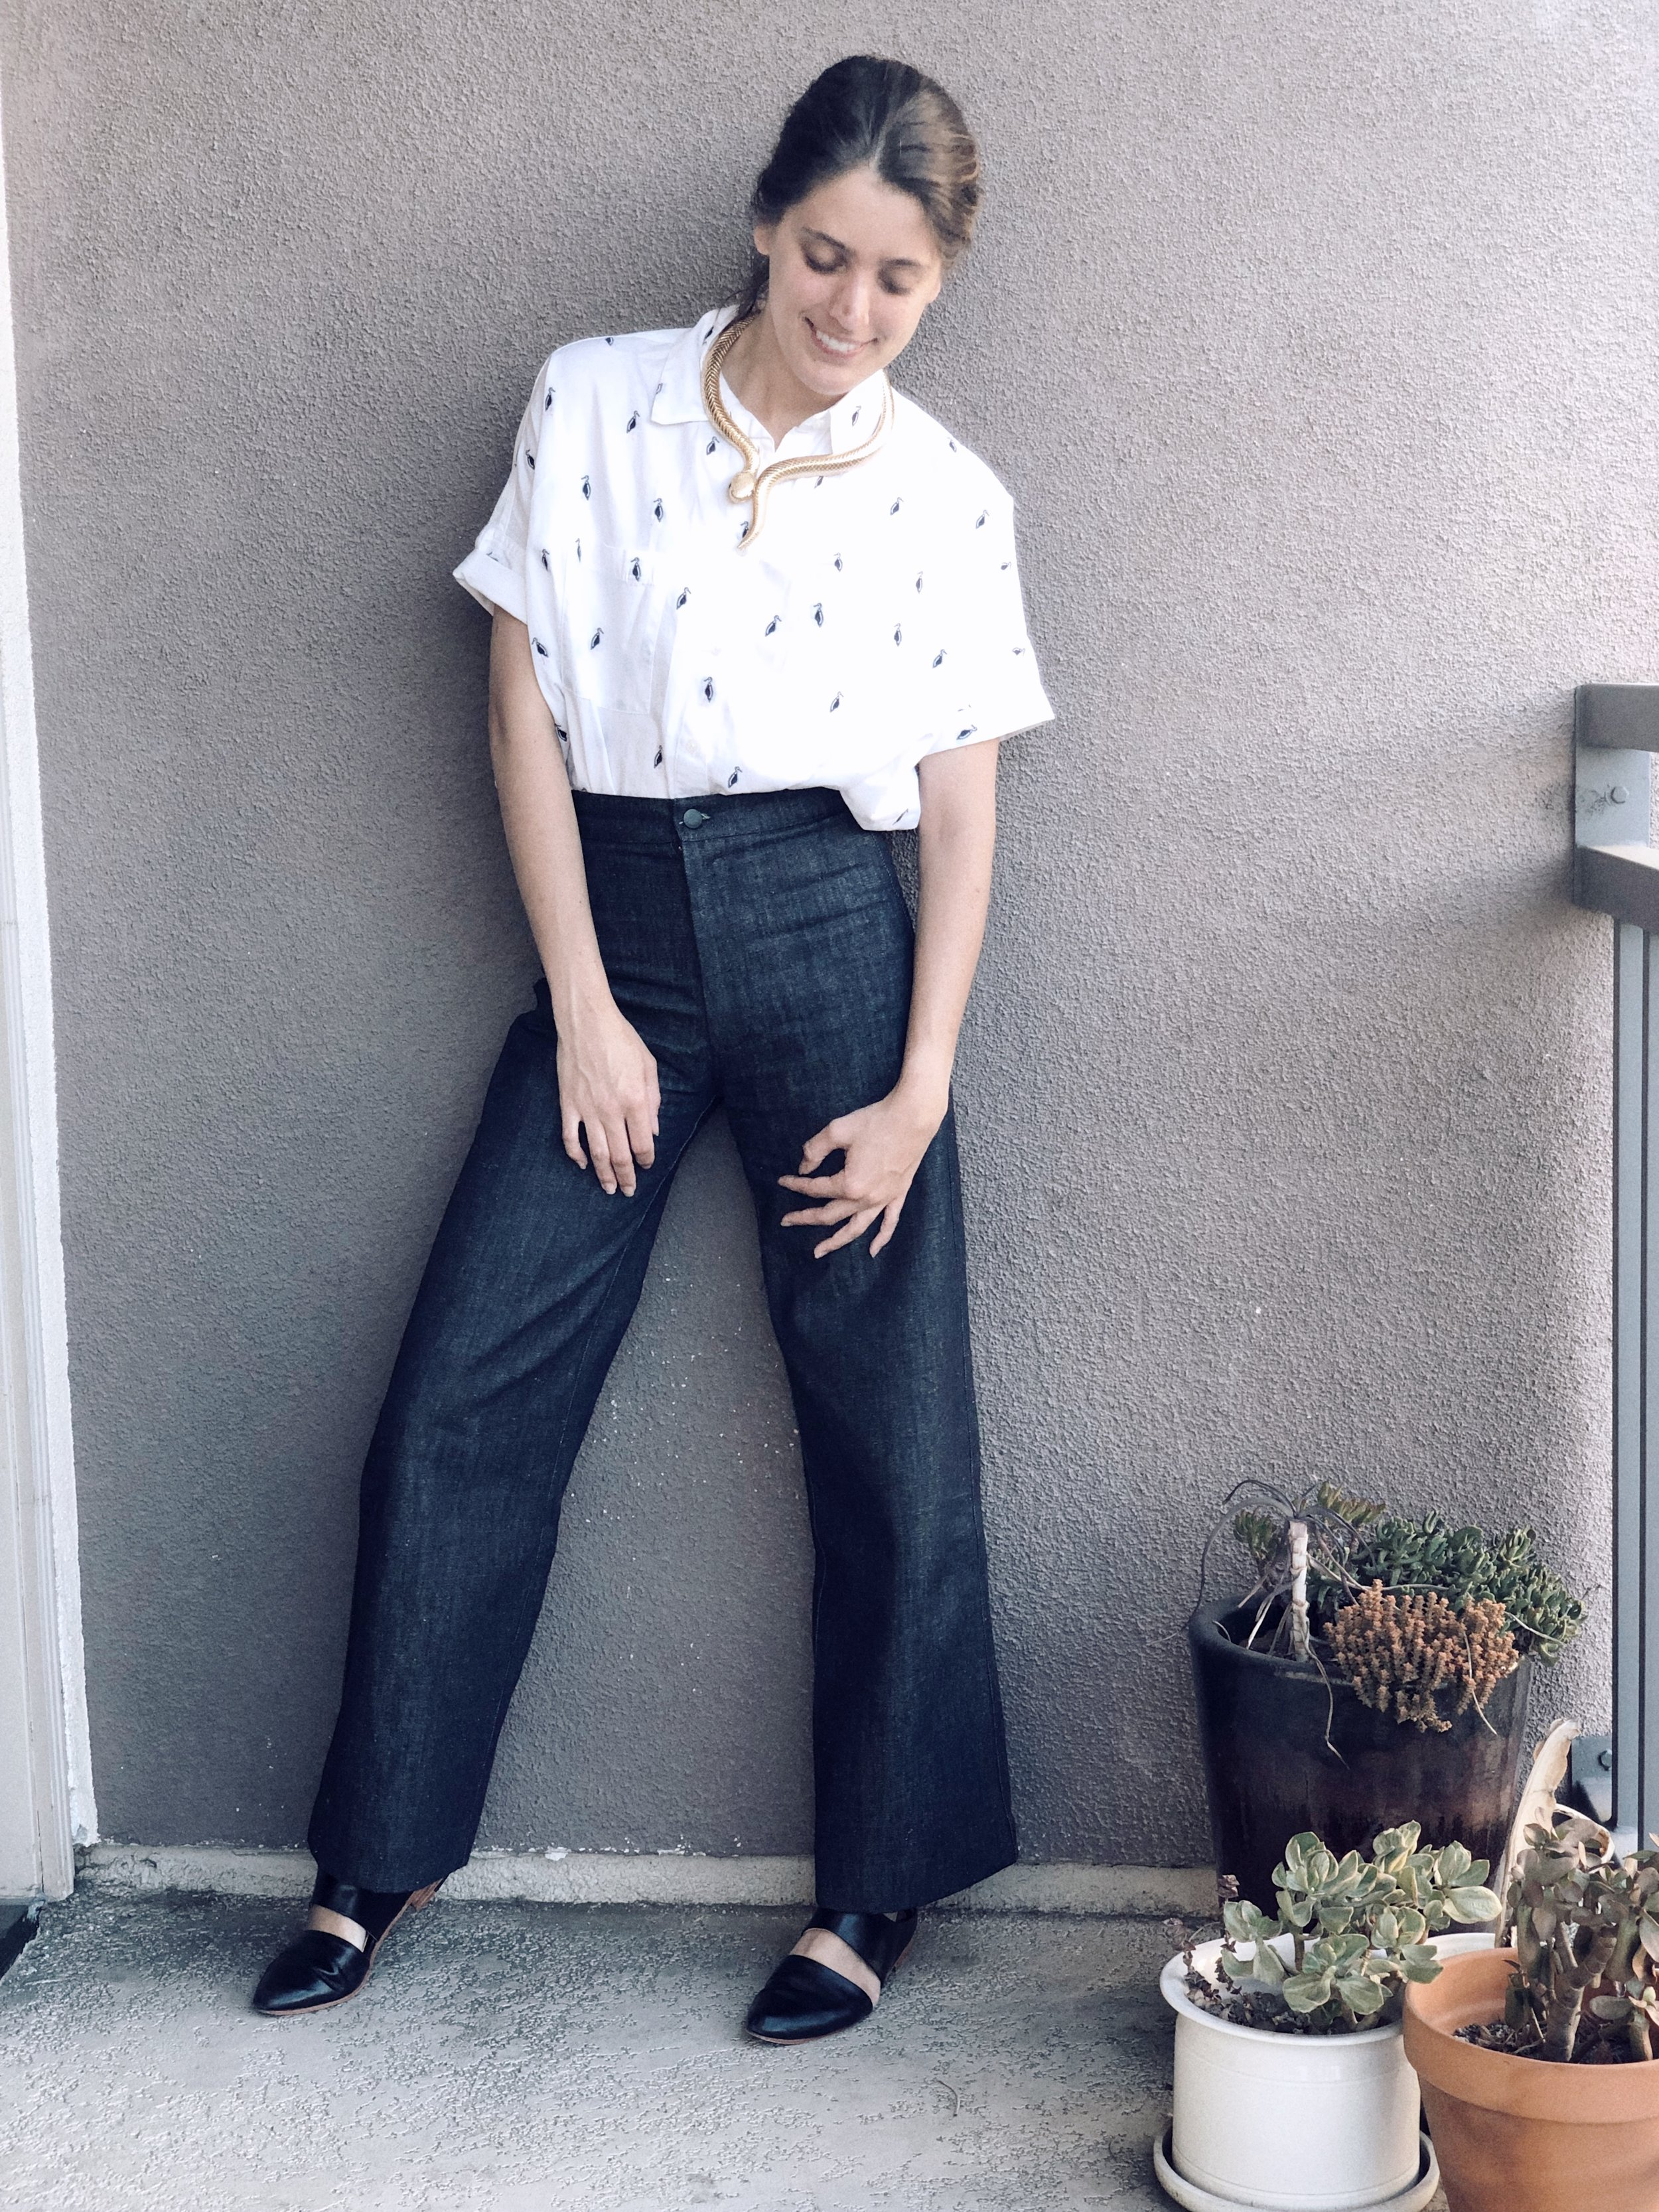 Top- Madewell via Poshmark; Denim- Ozma of California; Mules- ZouXou Shoes; Snake Necklace- Oldie but Goodie